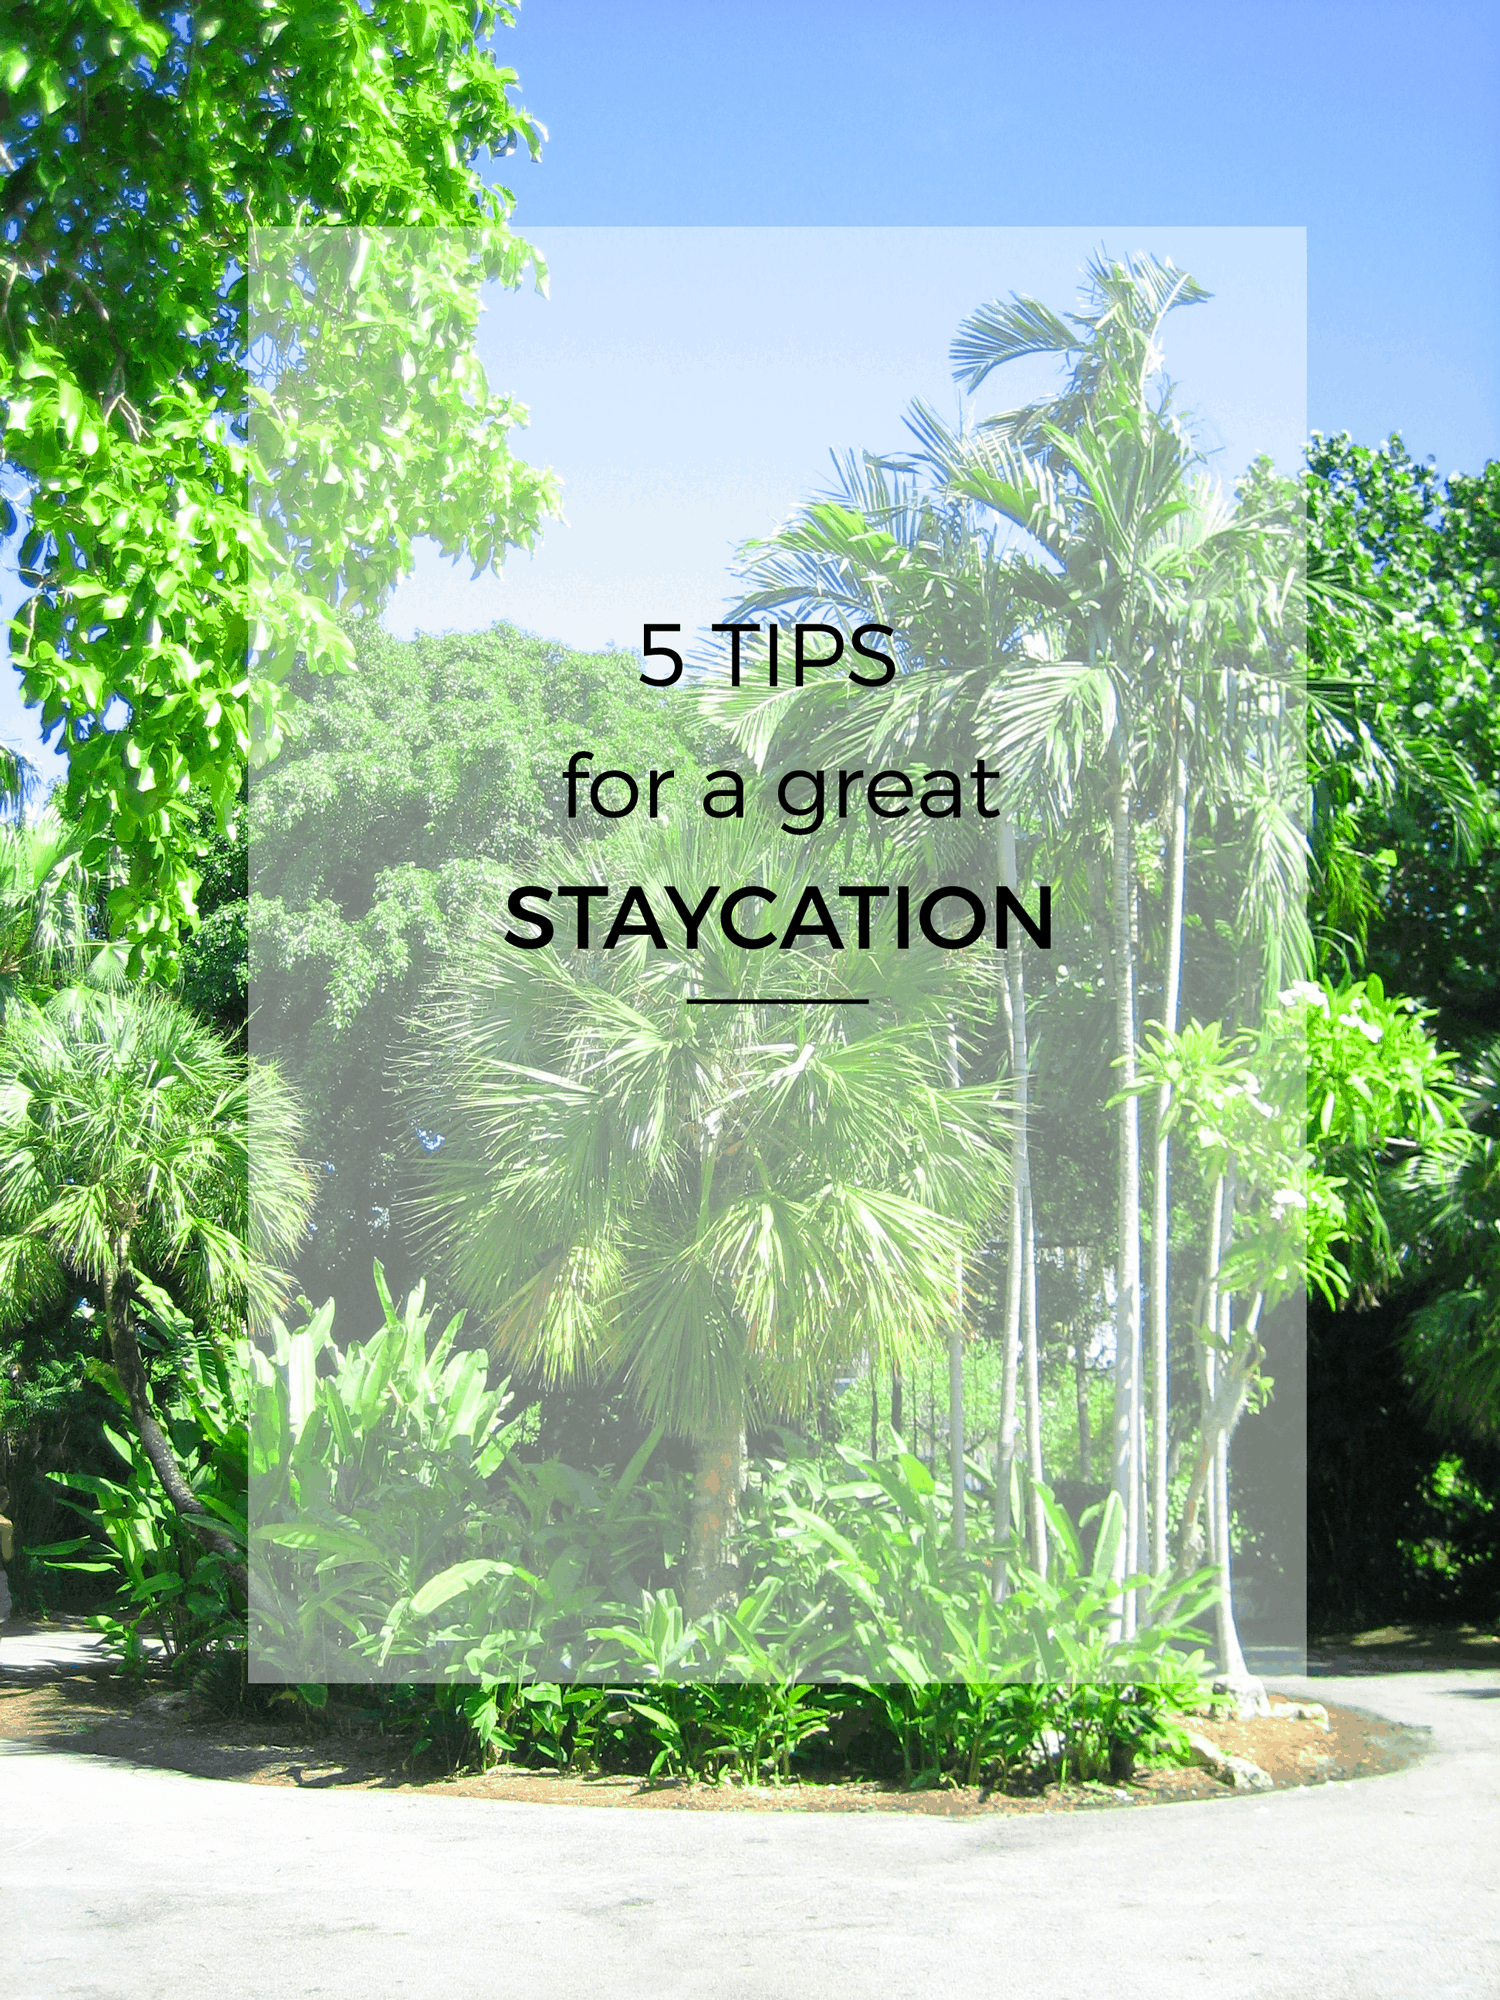 5 Tips for a Great Staycation